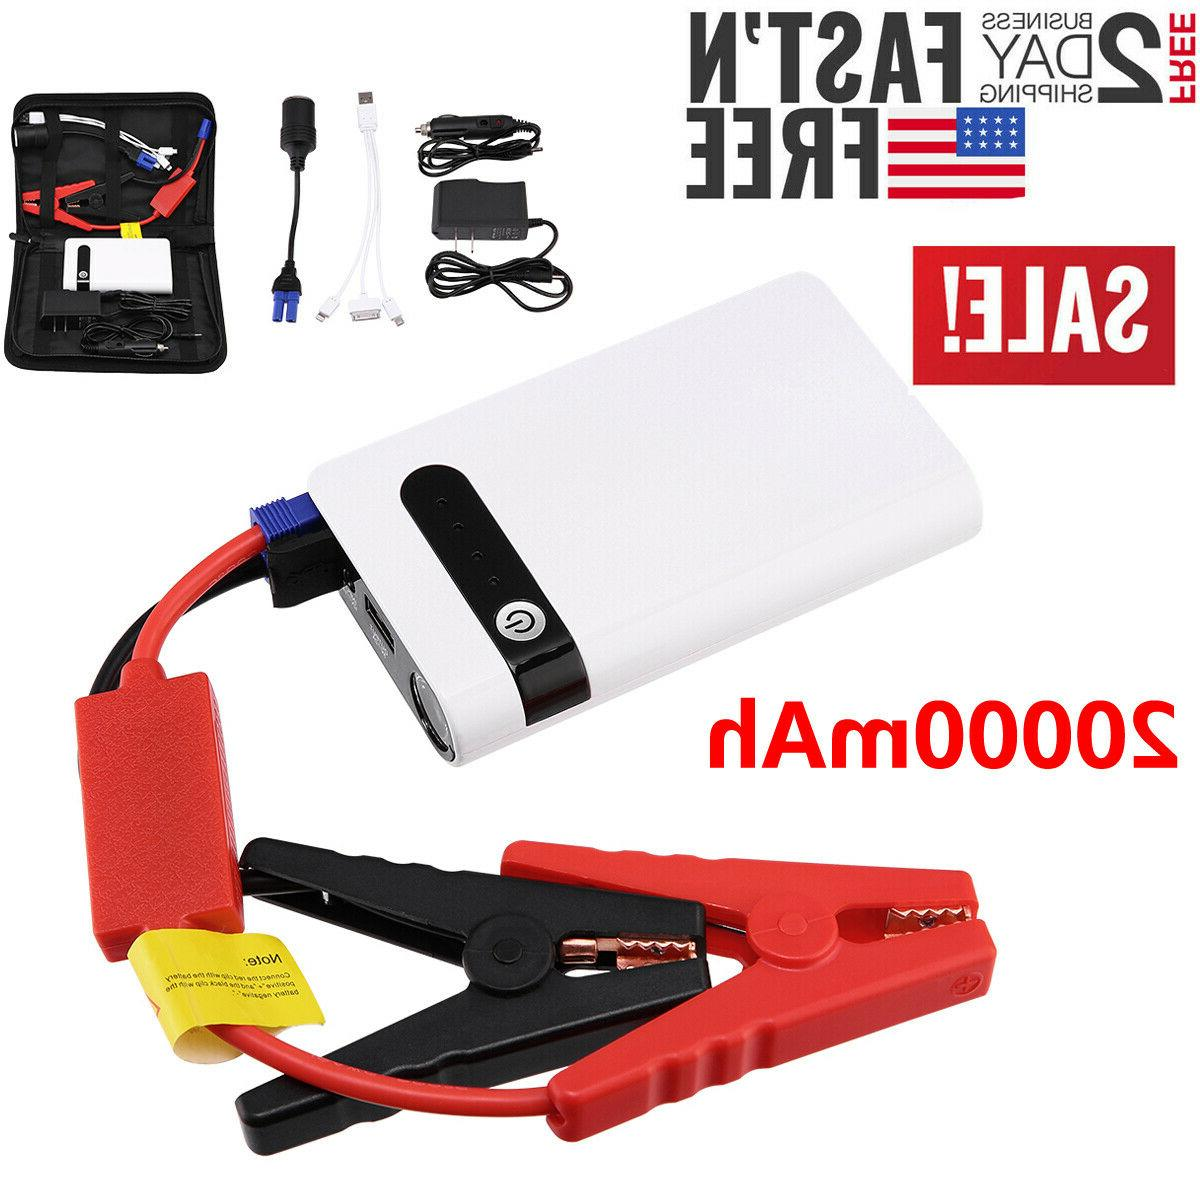 Portable Car Starter Vehicle Battery Charger